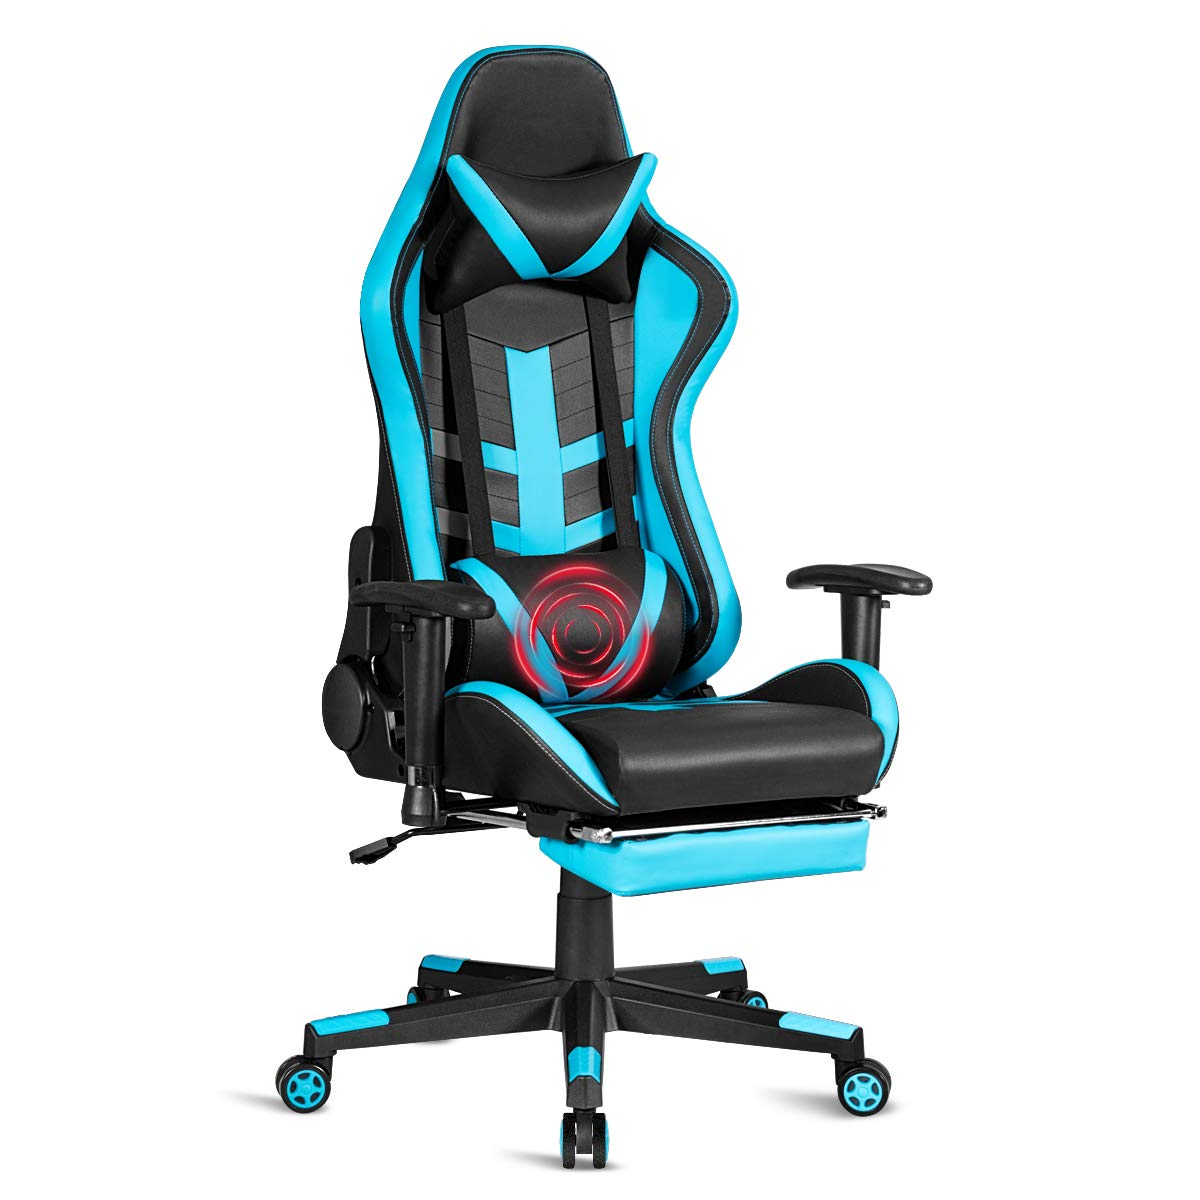 Giantex Massage Gaming Chair with Health Massager Lumbar Support, Adjustable High Back Computer Racing Seat Thick Memory Sponge with 360 Degree Revolving Chair Seat, Retractable Foot Shelf (Blue) by Giantex